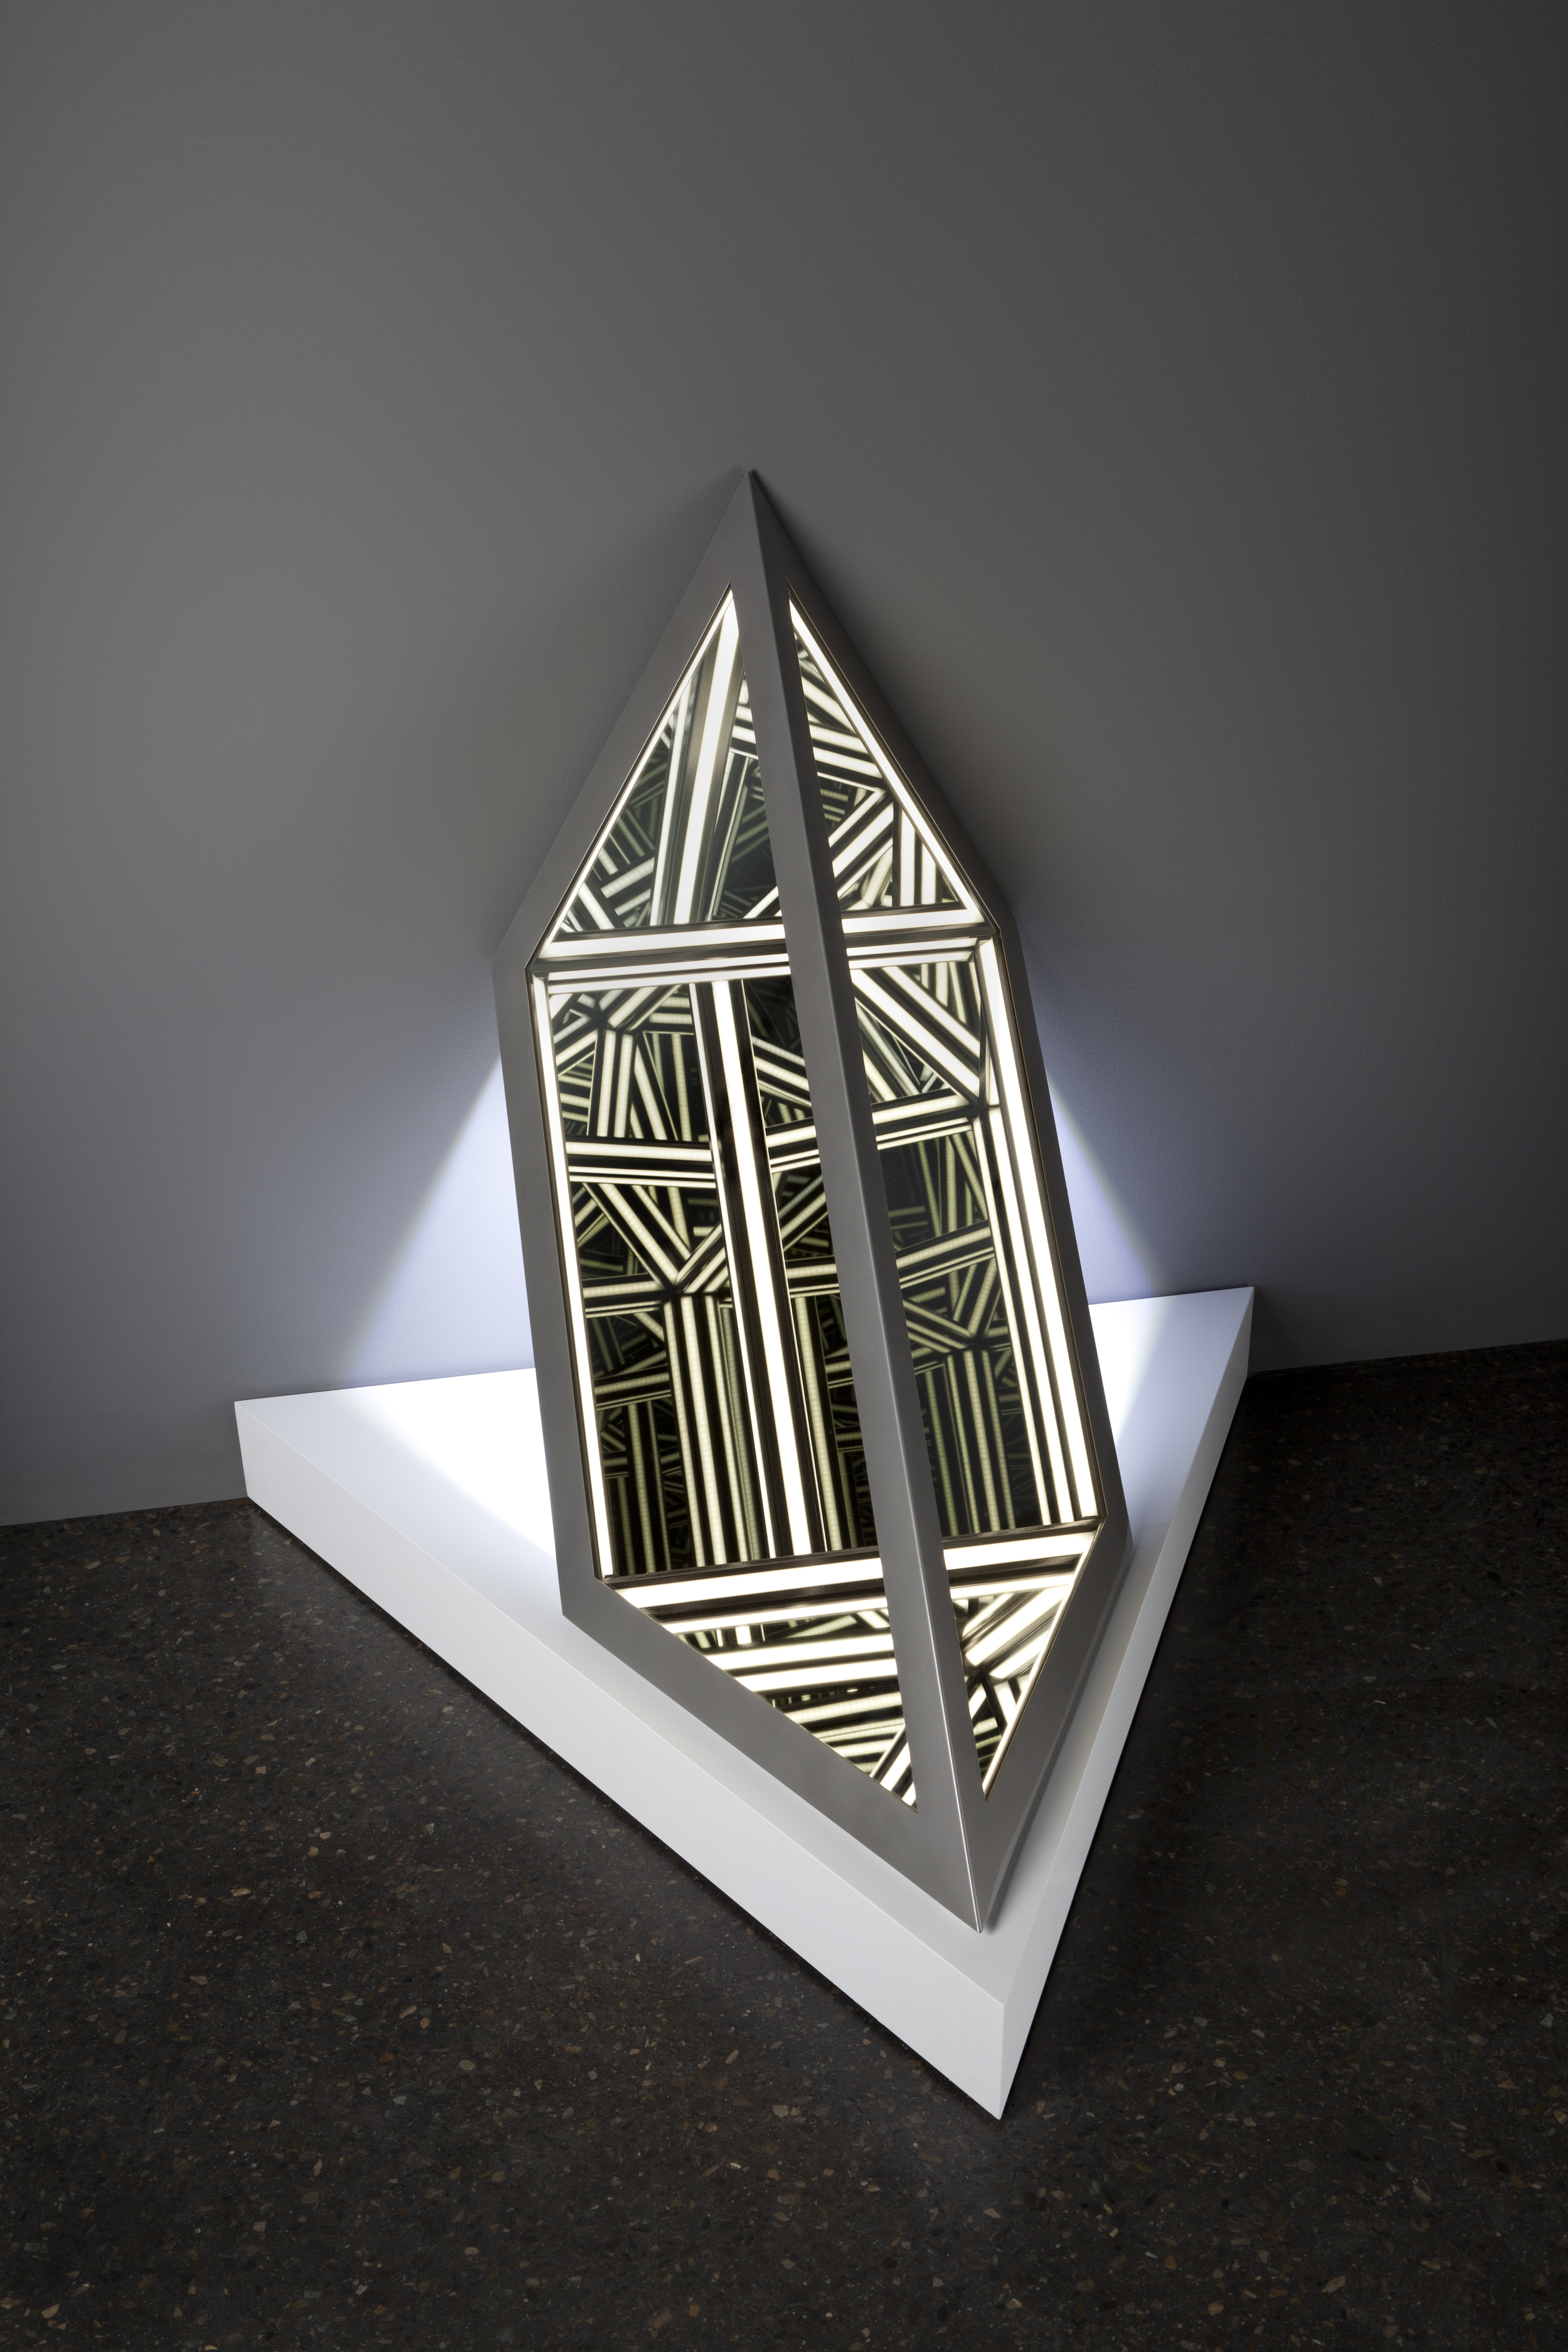 Blank II , wood, reflective glass, mirror, stainless steel, MDF and LED lights, 95 x 102 x 89cm (including plinth). Photo: Pippy Mount.